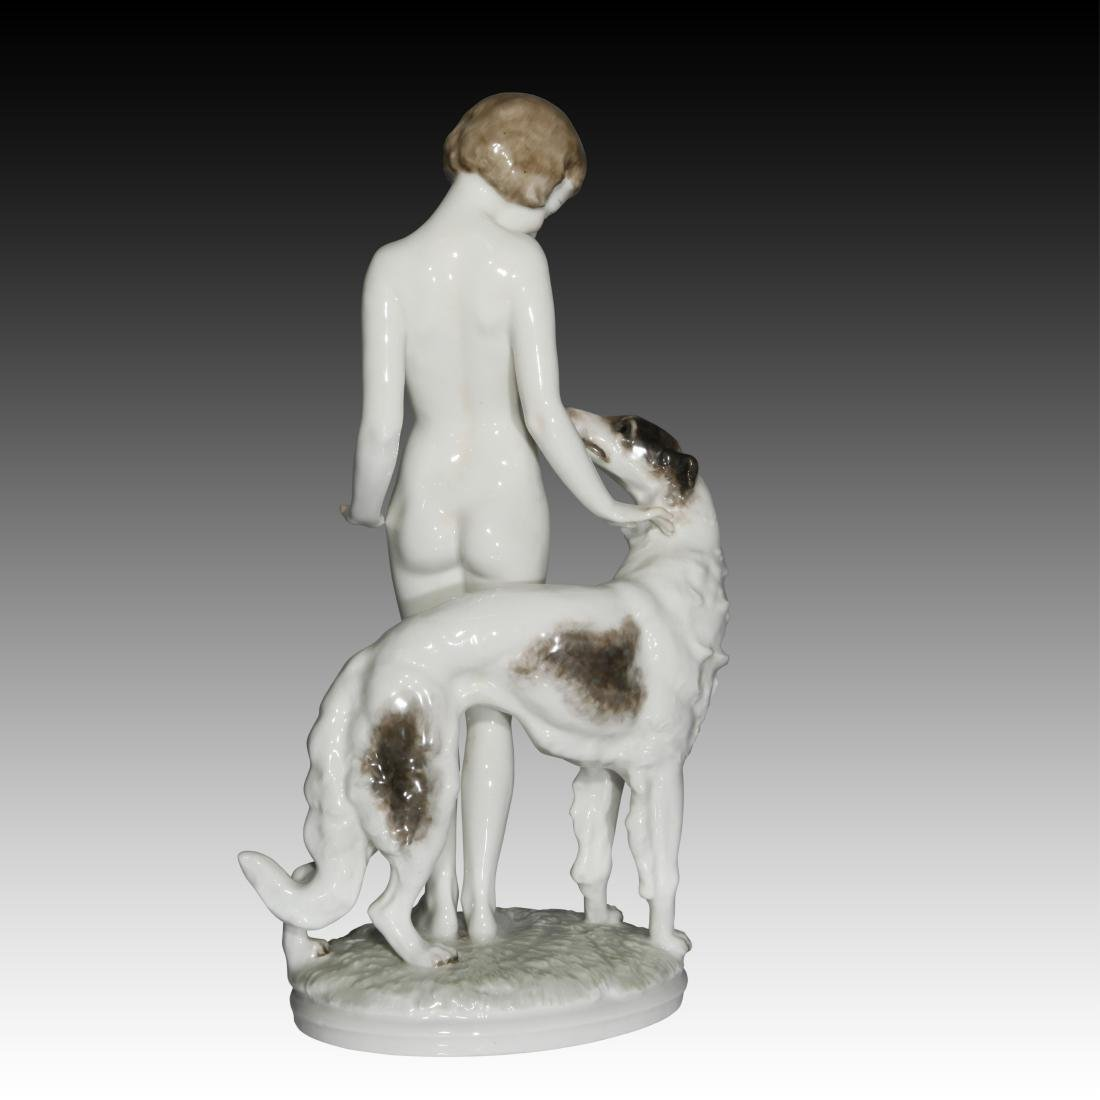 Hutschenreuther Girl with Borzoi Dog Figurine - 3